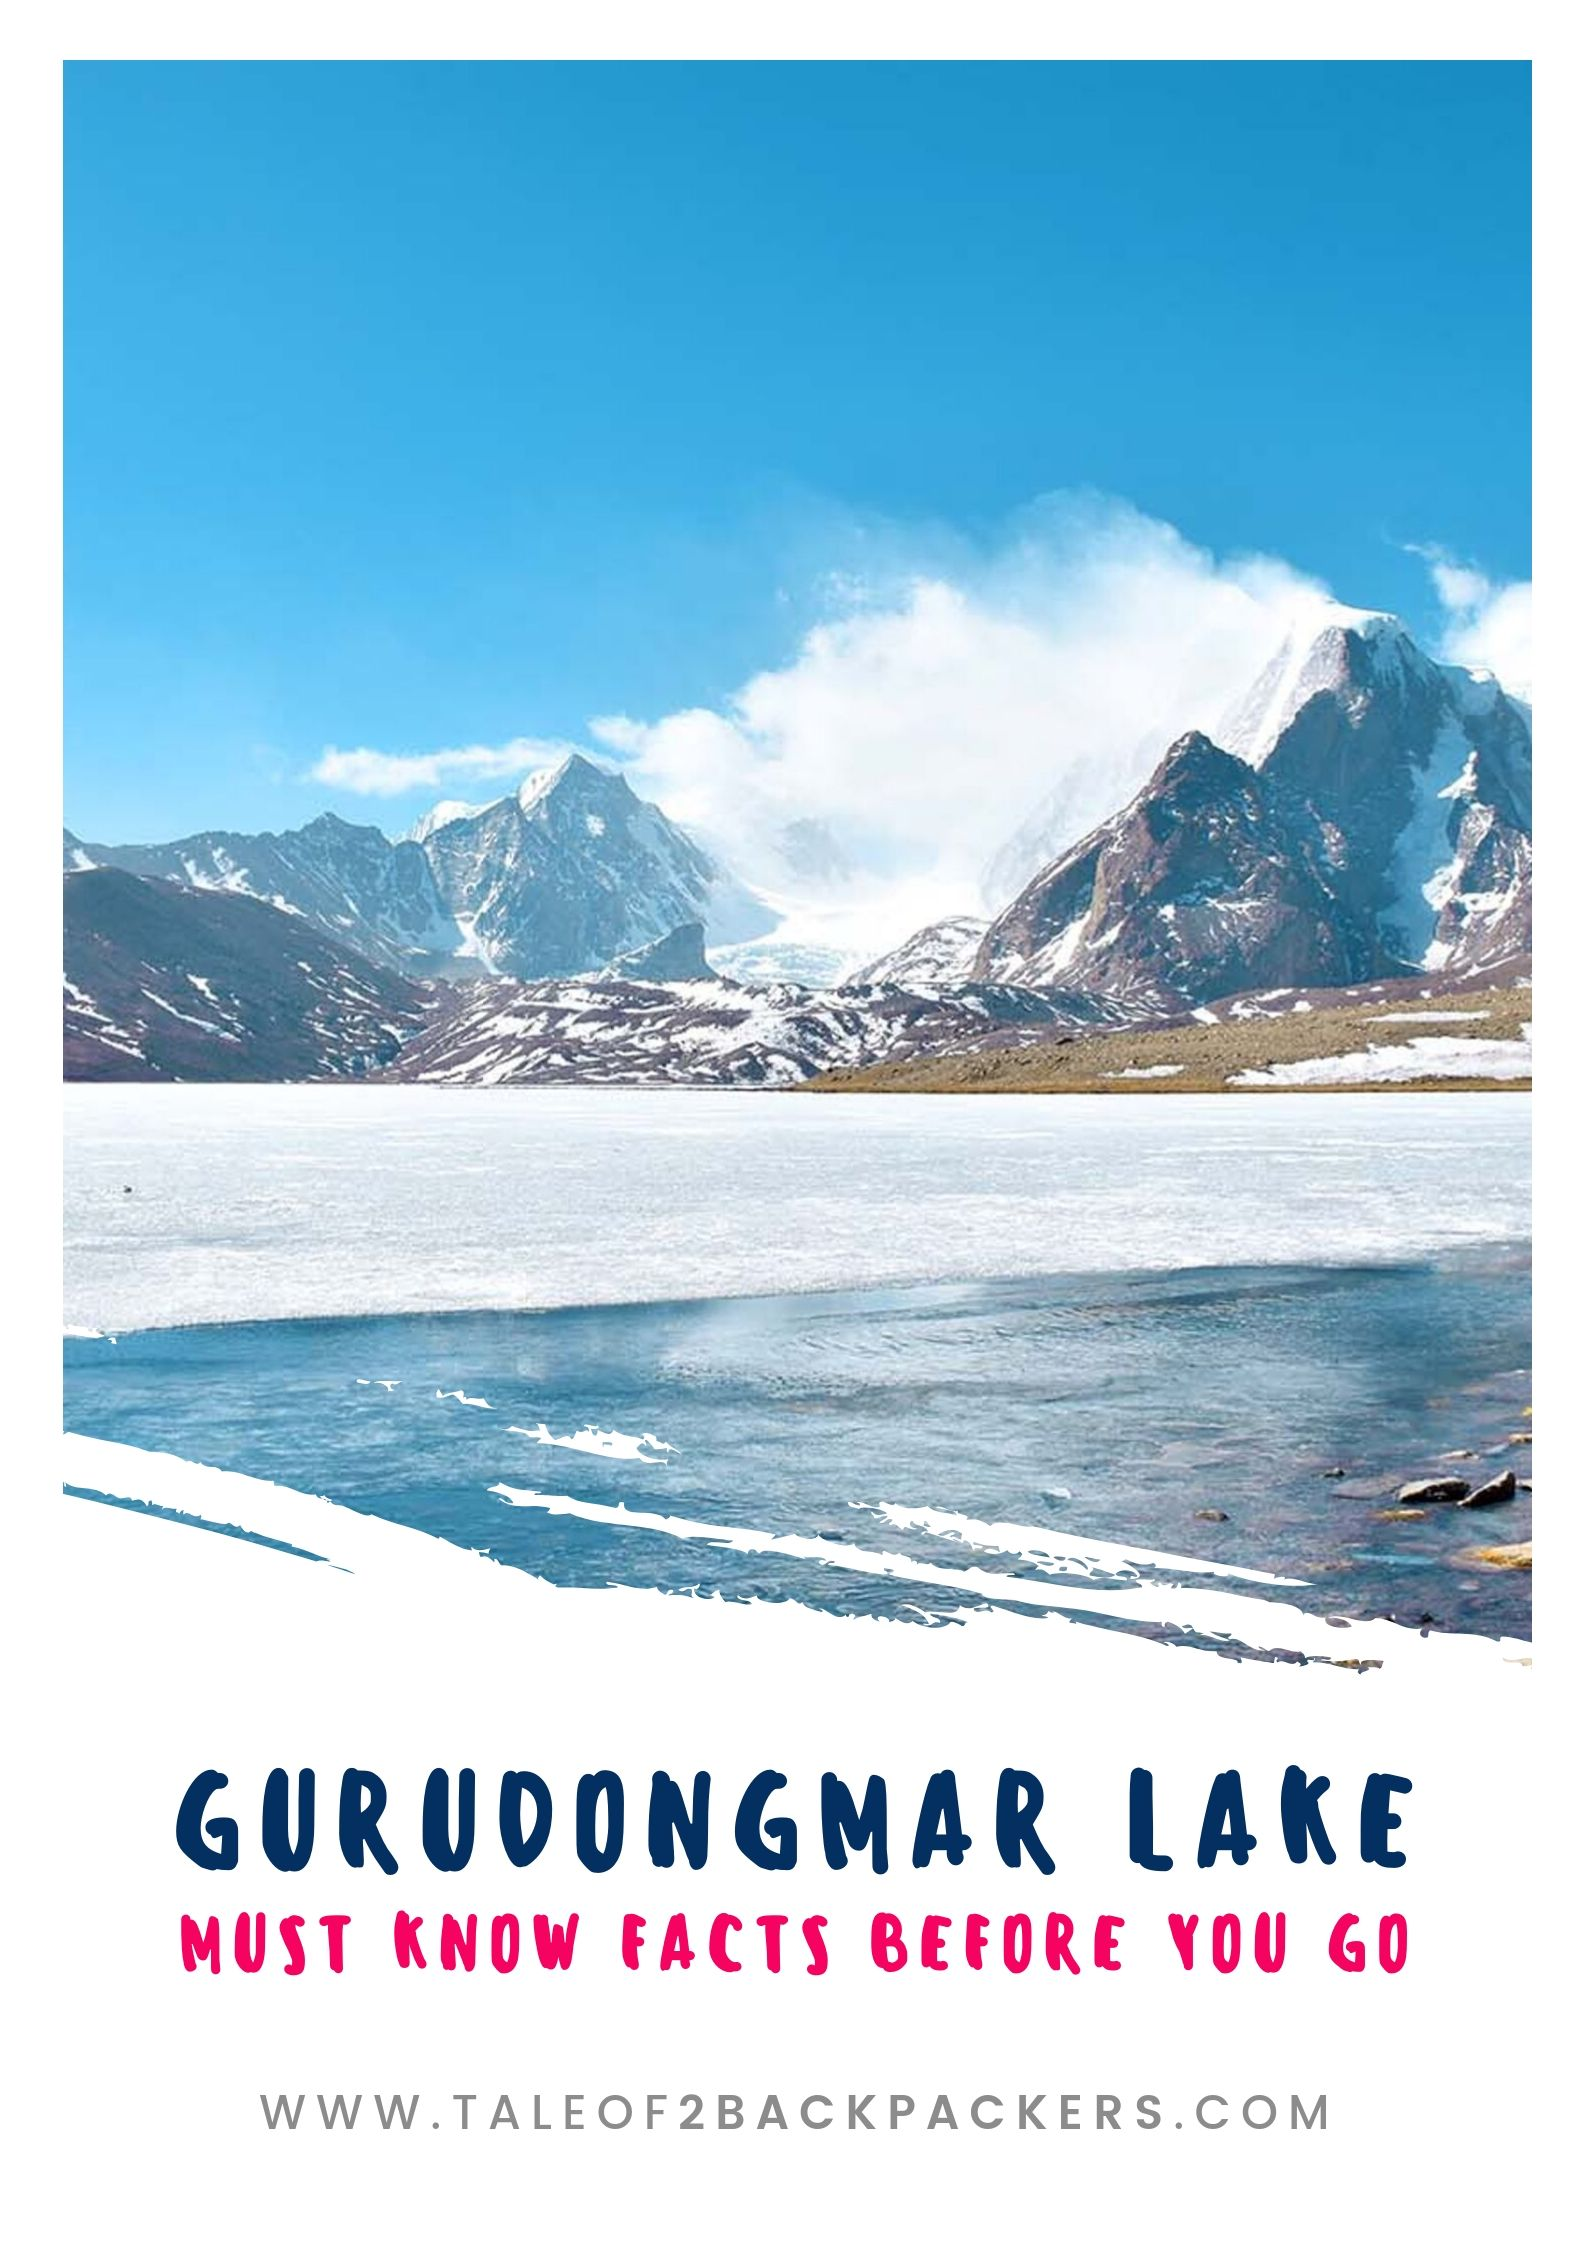 Gurudongmar Lake Guide - pinterest